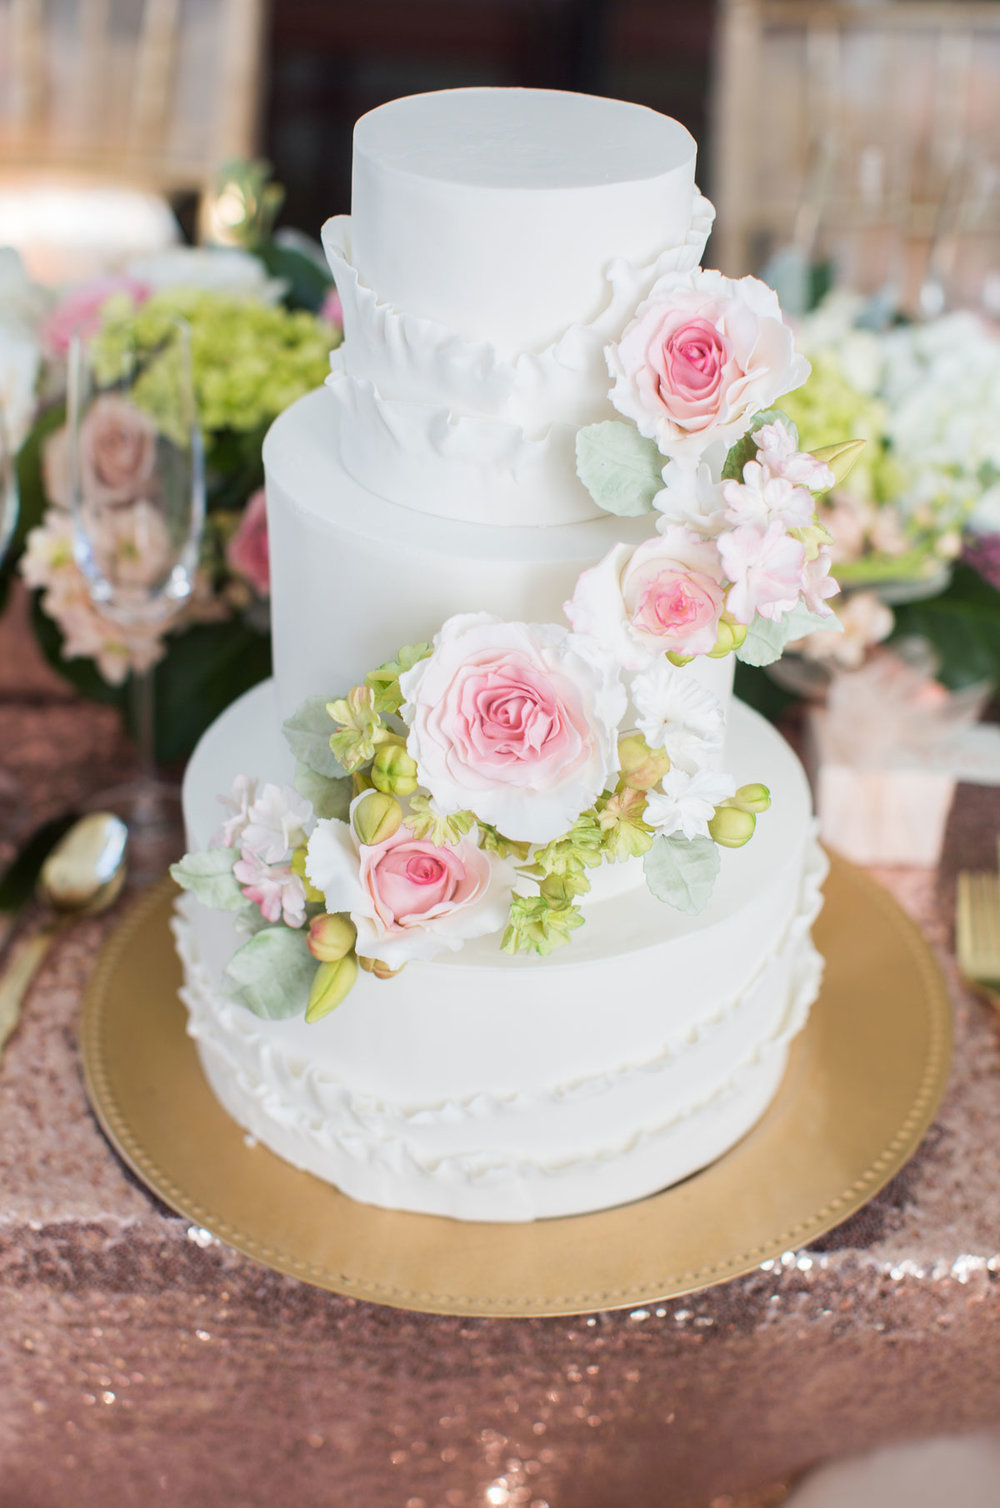 doveaffair_editorial_cake.jpg